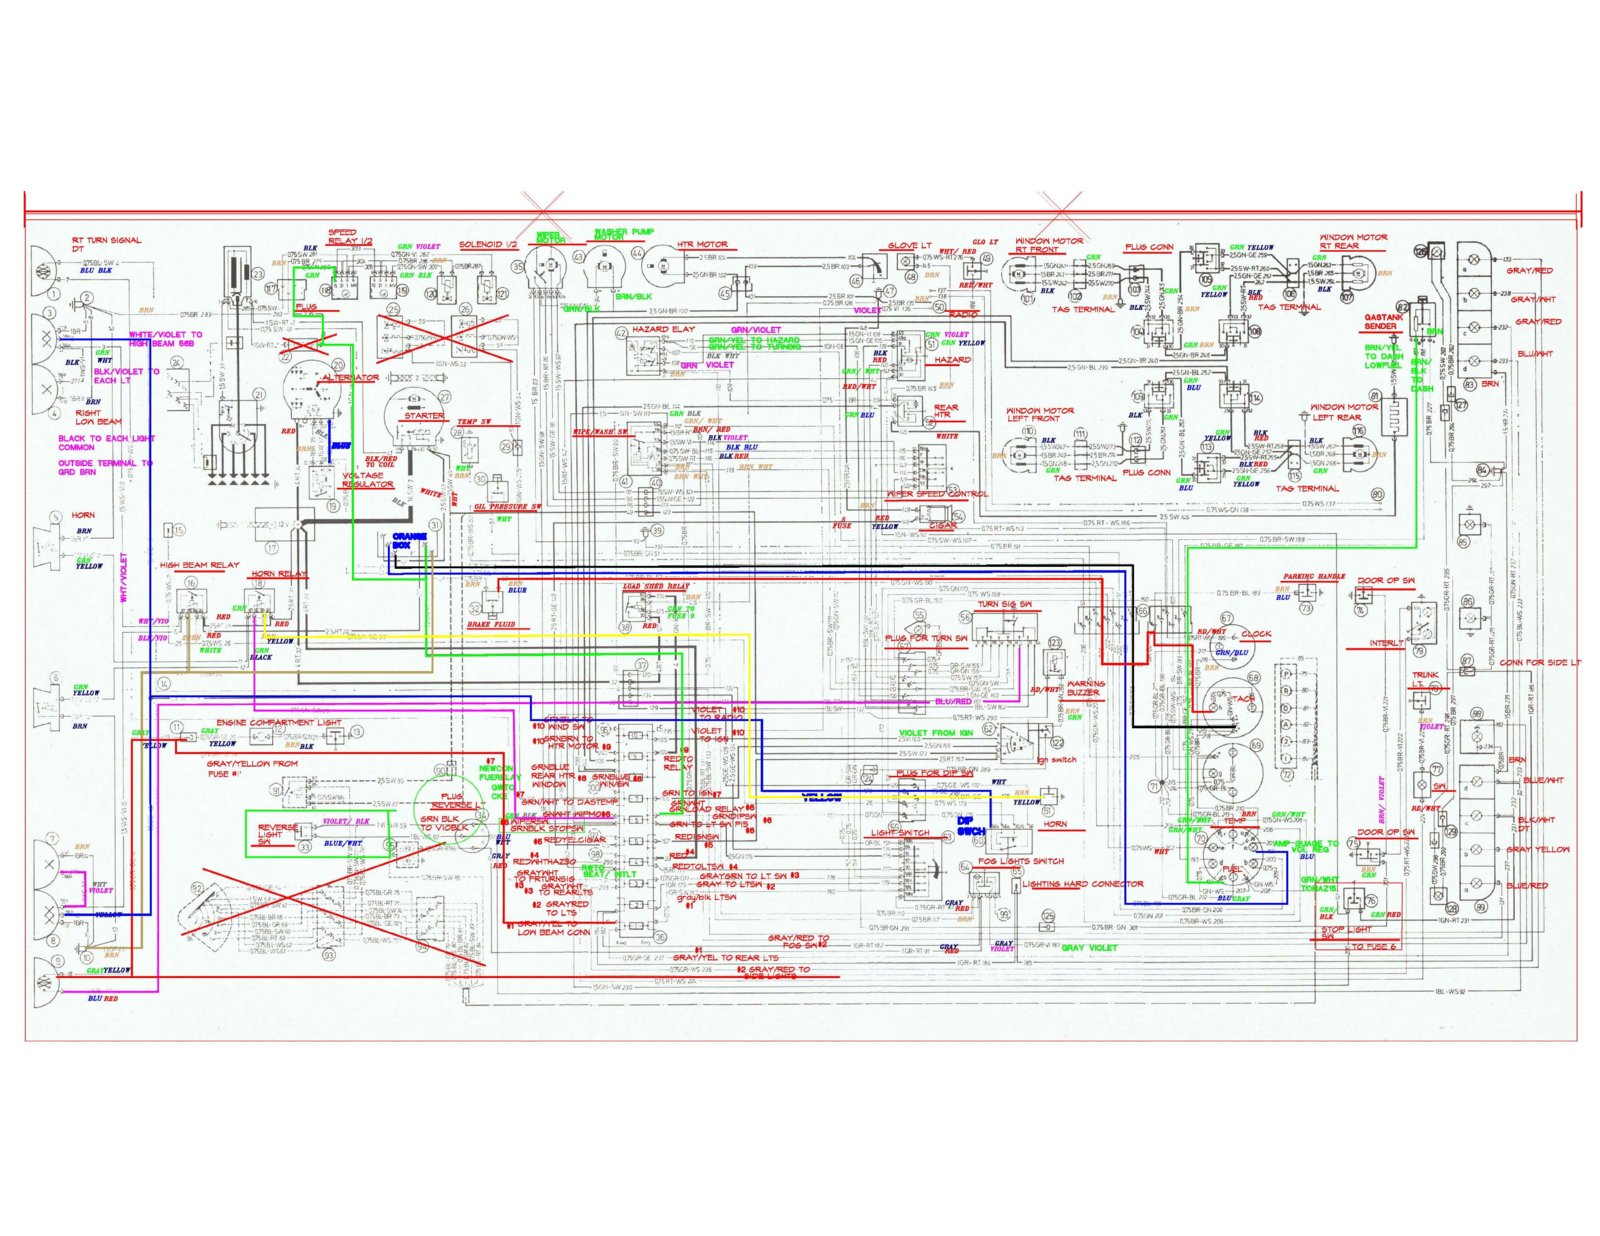 Wiring Diagram In English Bmw E9 Coupe Discussion Forum Wiring-Diagram BMW  2002 E10 E9 Bmw Wiring Diagrams